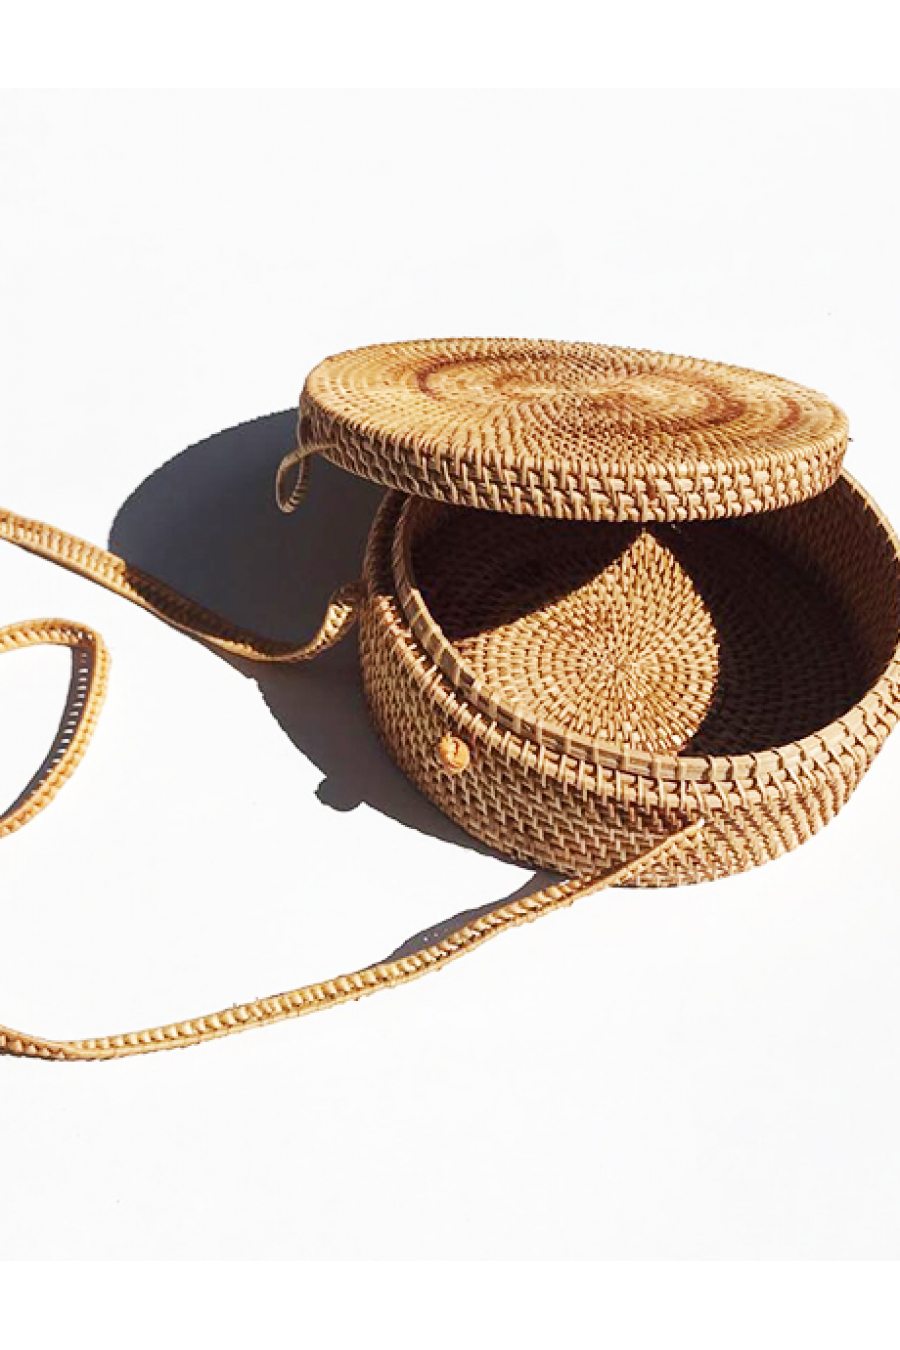 BAMBOO BAGS - Round Bag